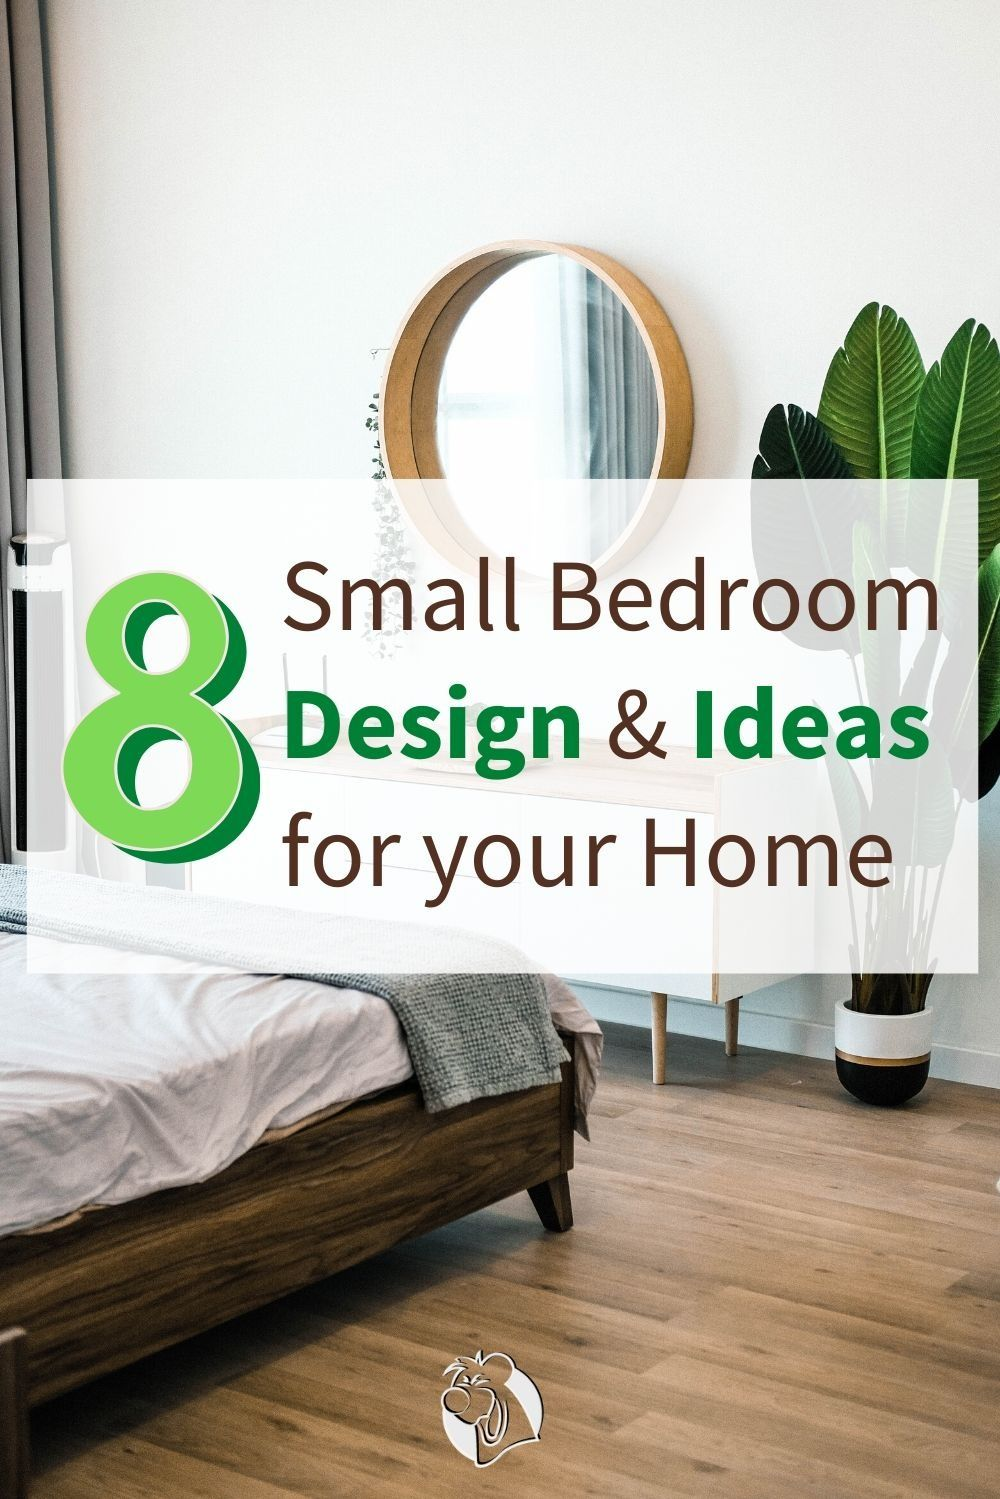 When it comes to small #bedrooms, it can often be a challenge to find the best ways to #decorate and #style the room. Here are #savvy #small #room #decorating #ideas to help you create a bedroom s#pace that may be small in square footage, but is big in style. #balooworldotca #remodel #hometips #homedecorideas #homeremodel #remodelingideas #bedroomdecor #smallbedroom #smallspaceliving #smallspacesquad #smallbedroomdecor #messyhome #homedecor #bedroomdecor #homeinspiration #interiordesire #style